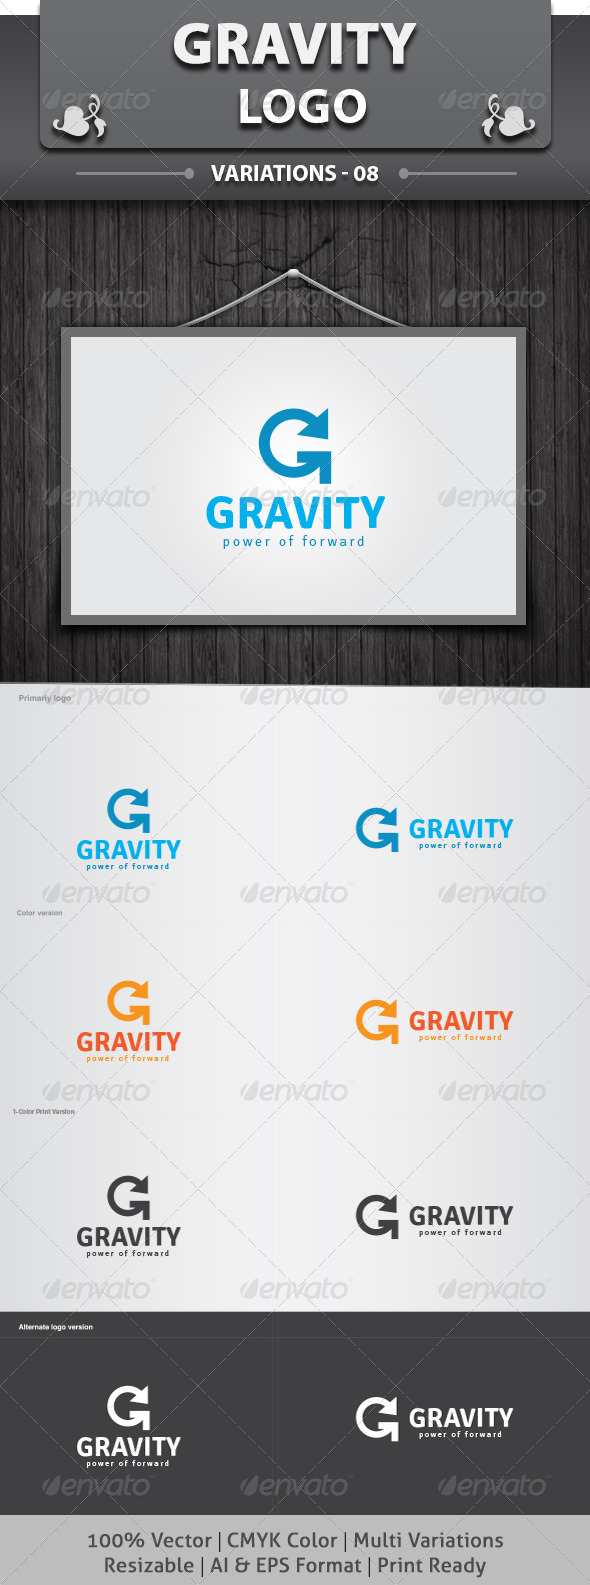 GraphicRiver Gravity Logo 6250272